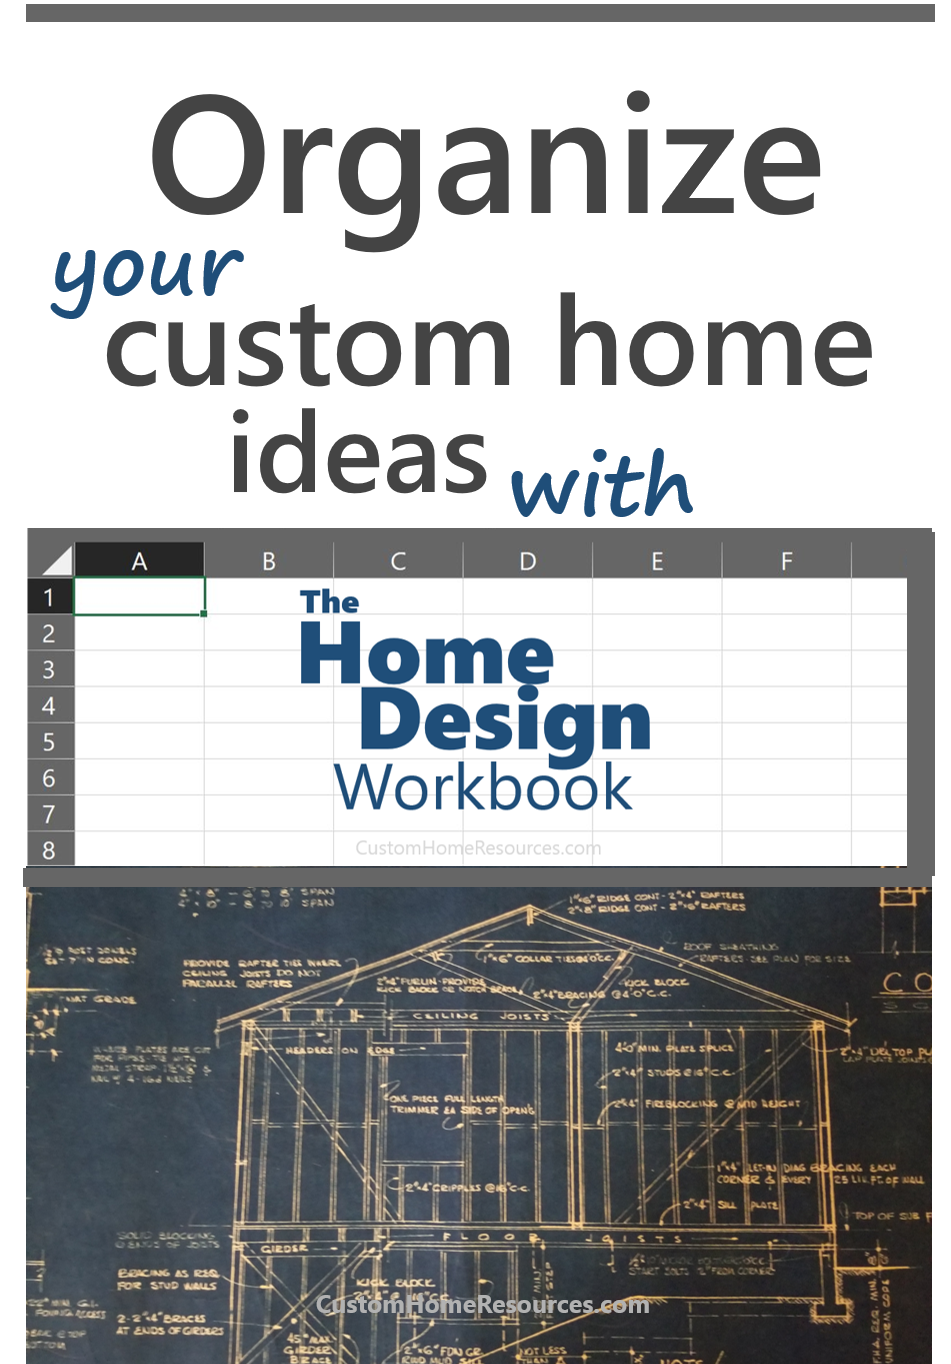 organize your custom home ideas with our spreadsheet so you can